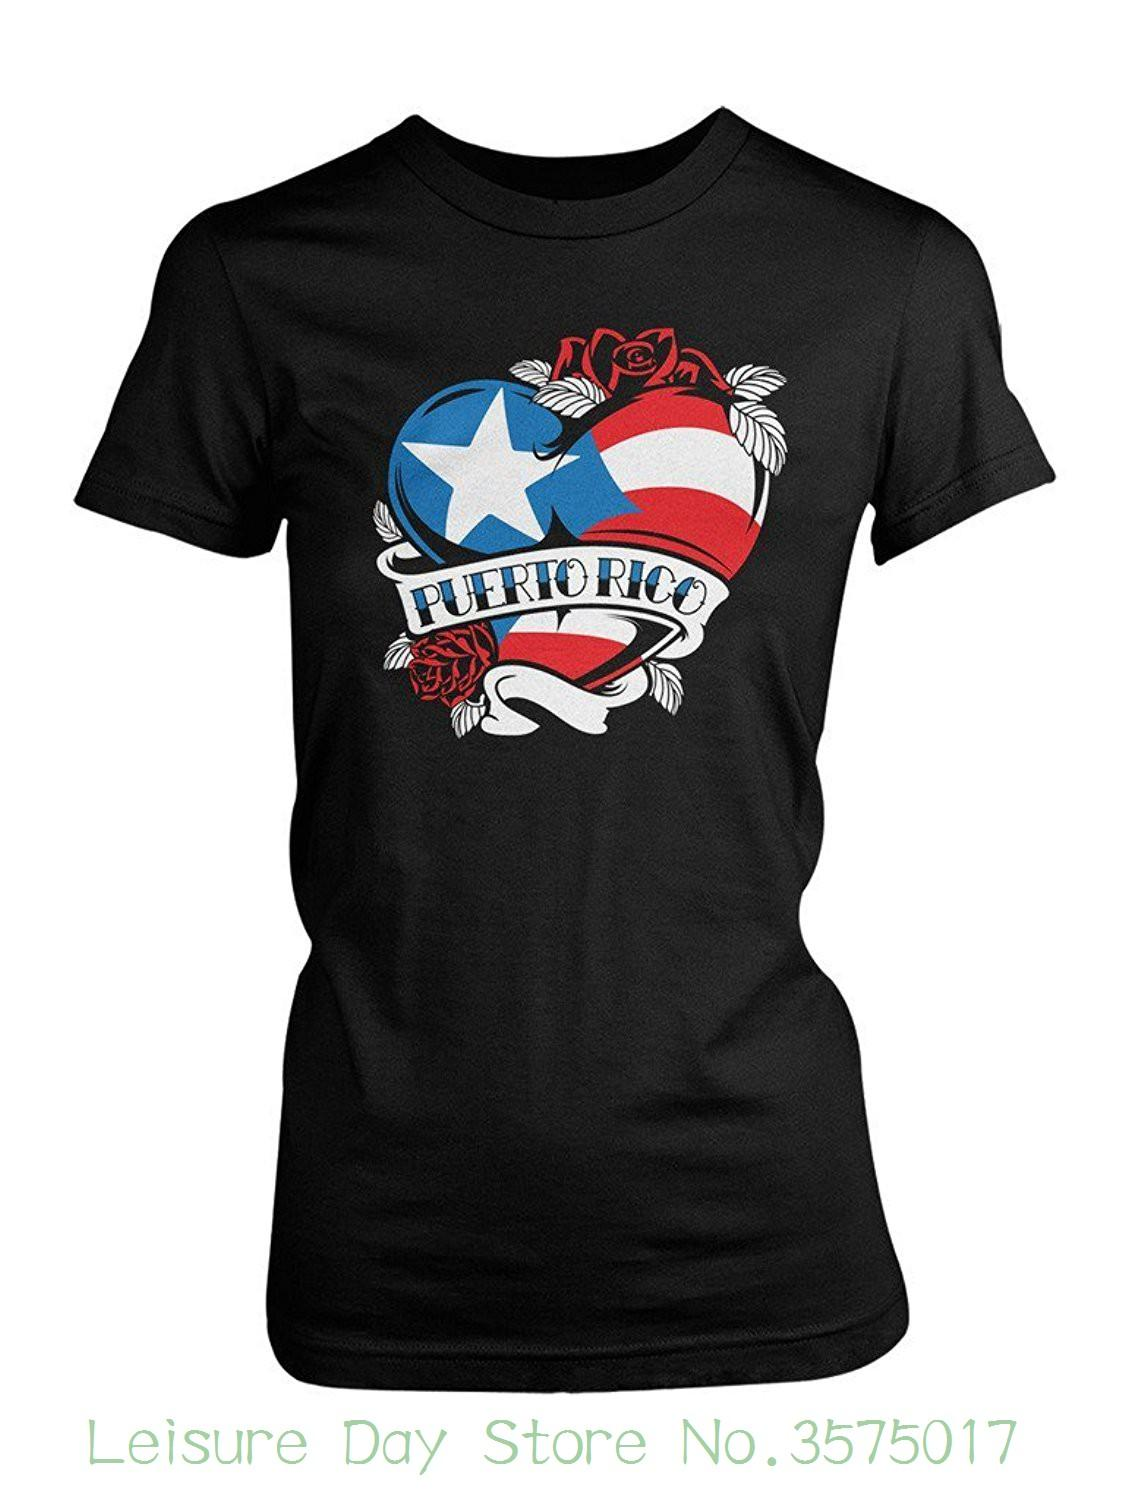 2605fc5b O-neck Fashion Casual High Quality Print T Shirt Women's Puerto Rico Tattoo  Heart Flag T-shirt